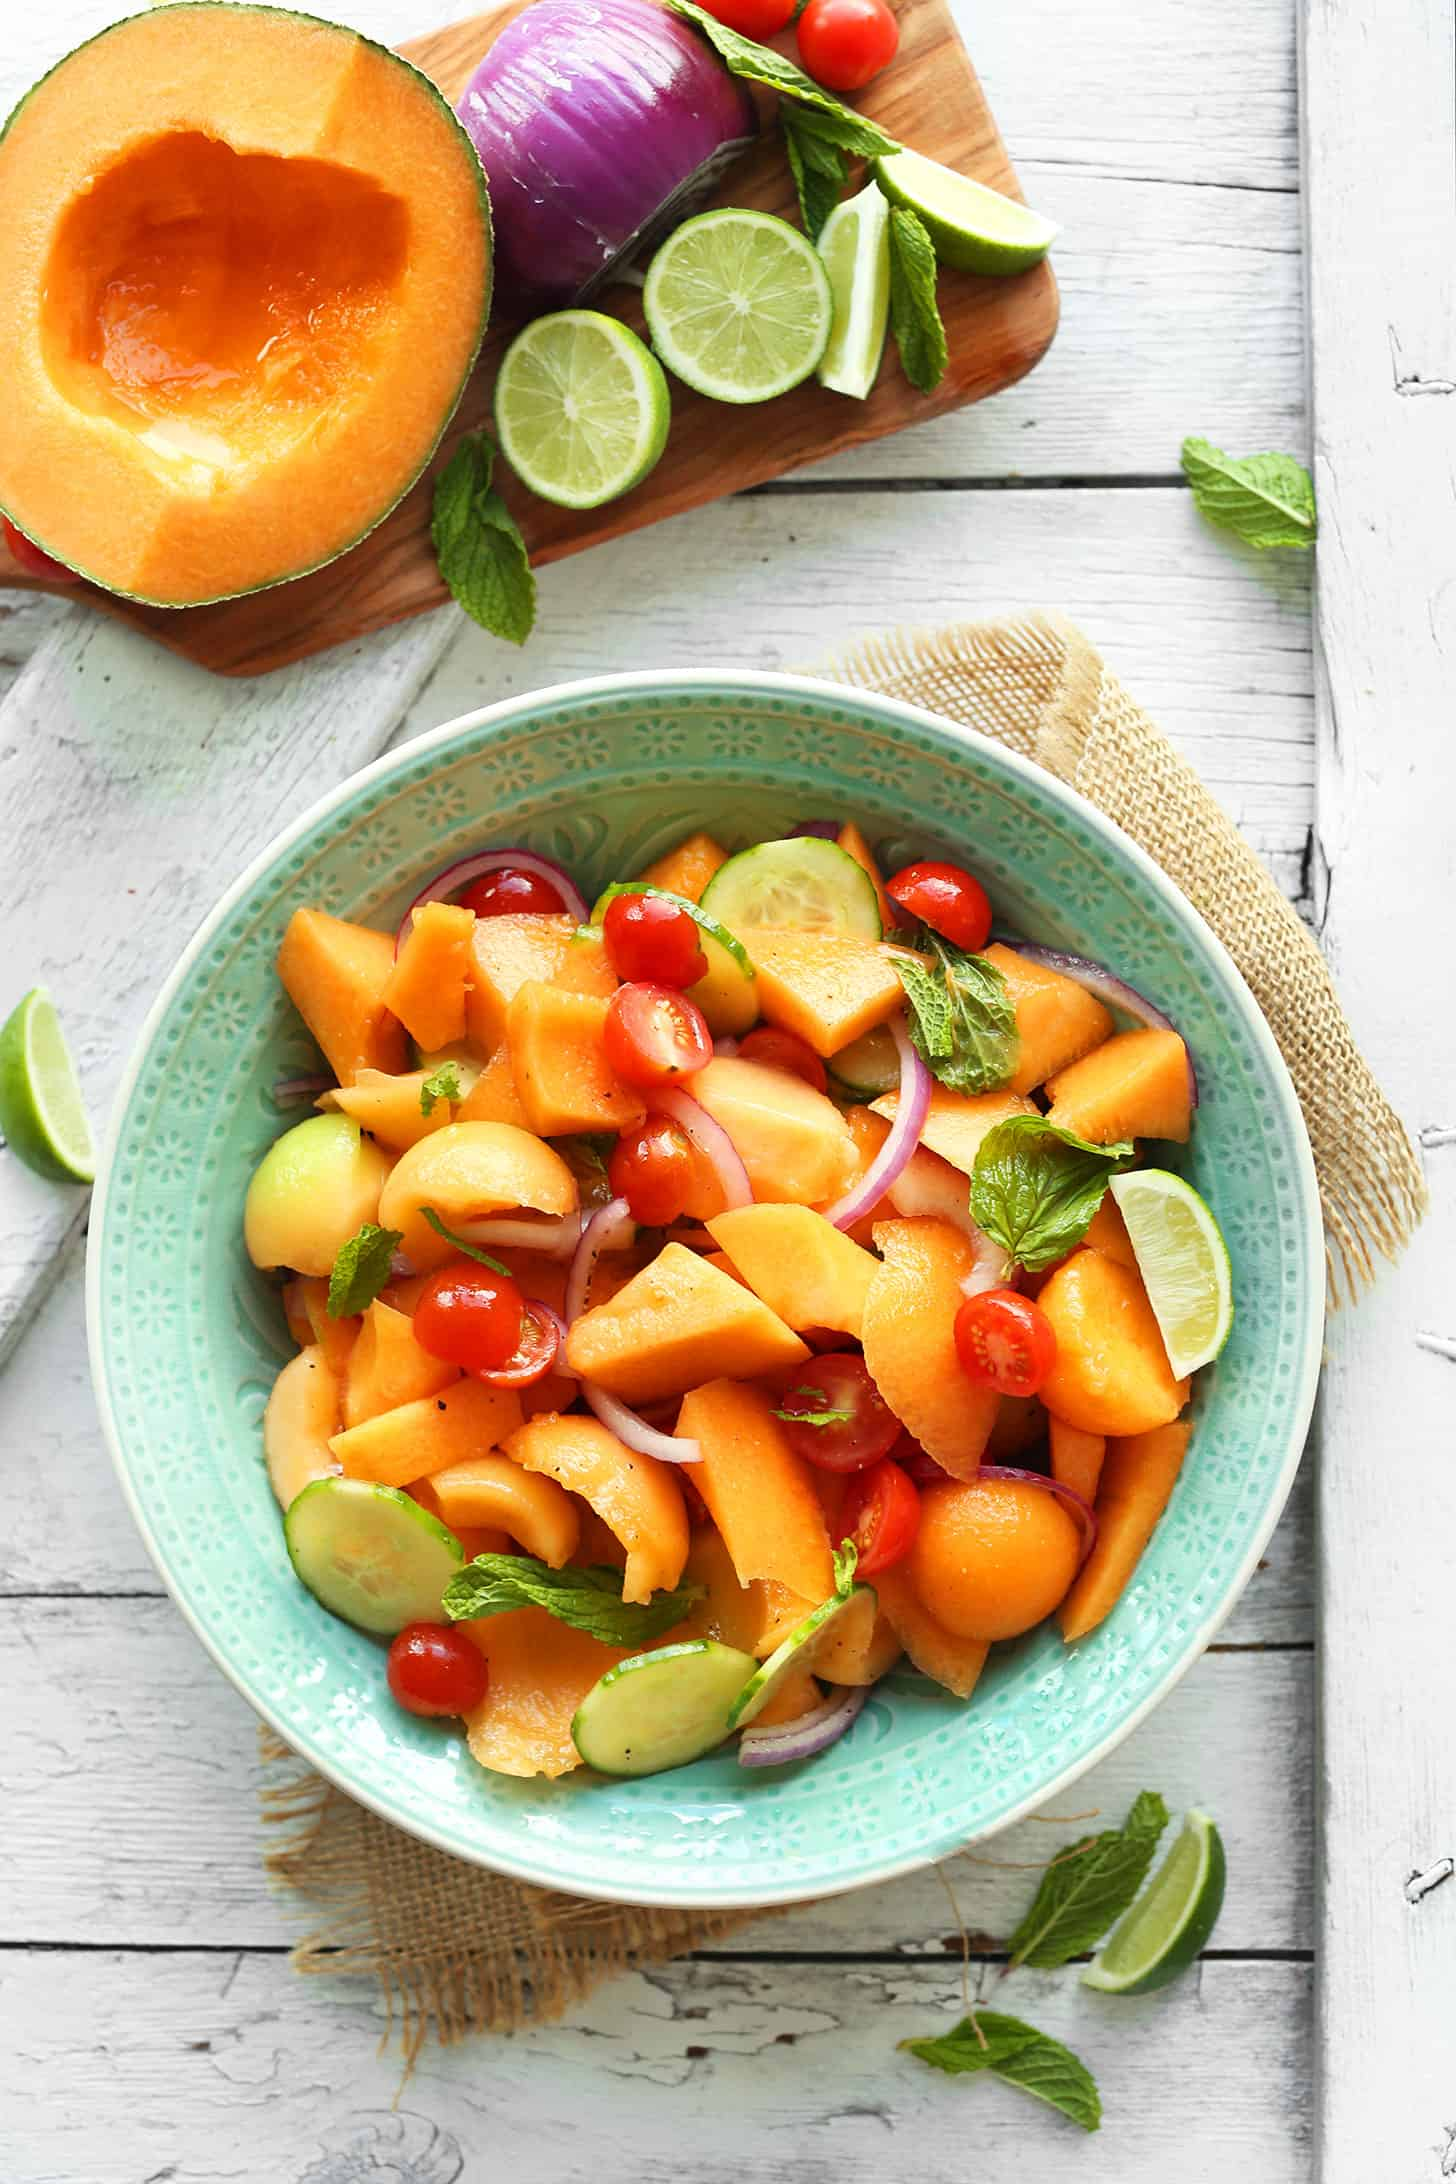 Summer tomato and cantaloupe salad